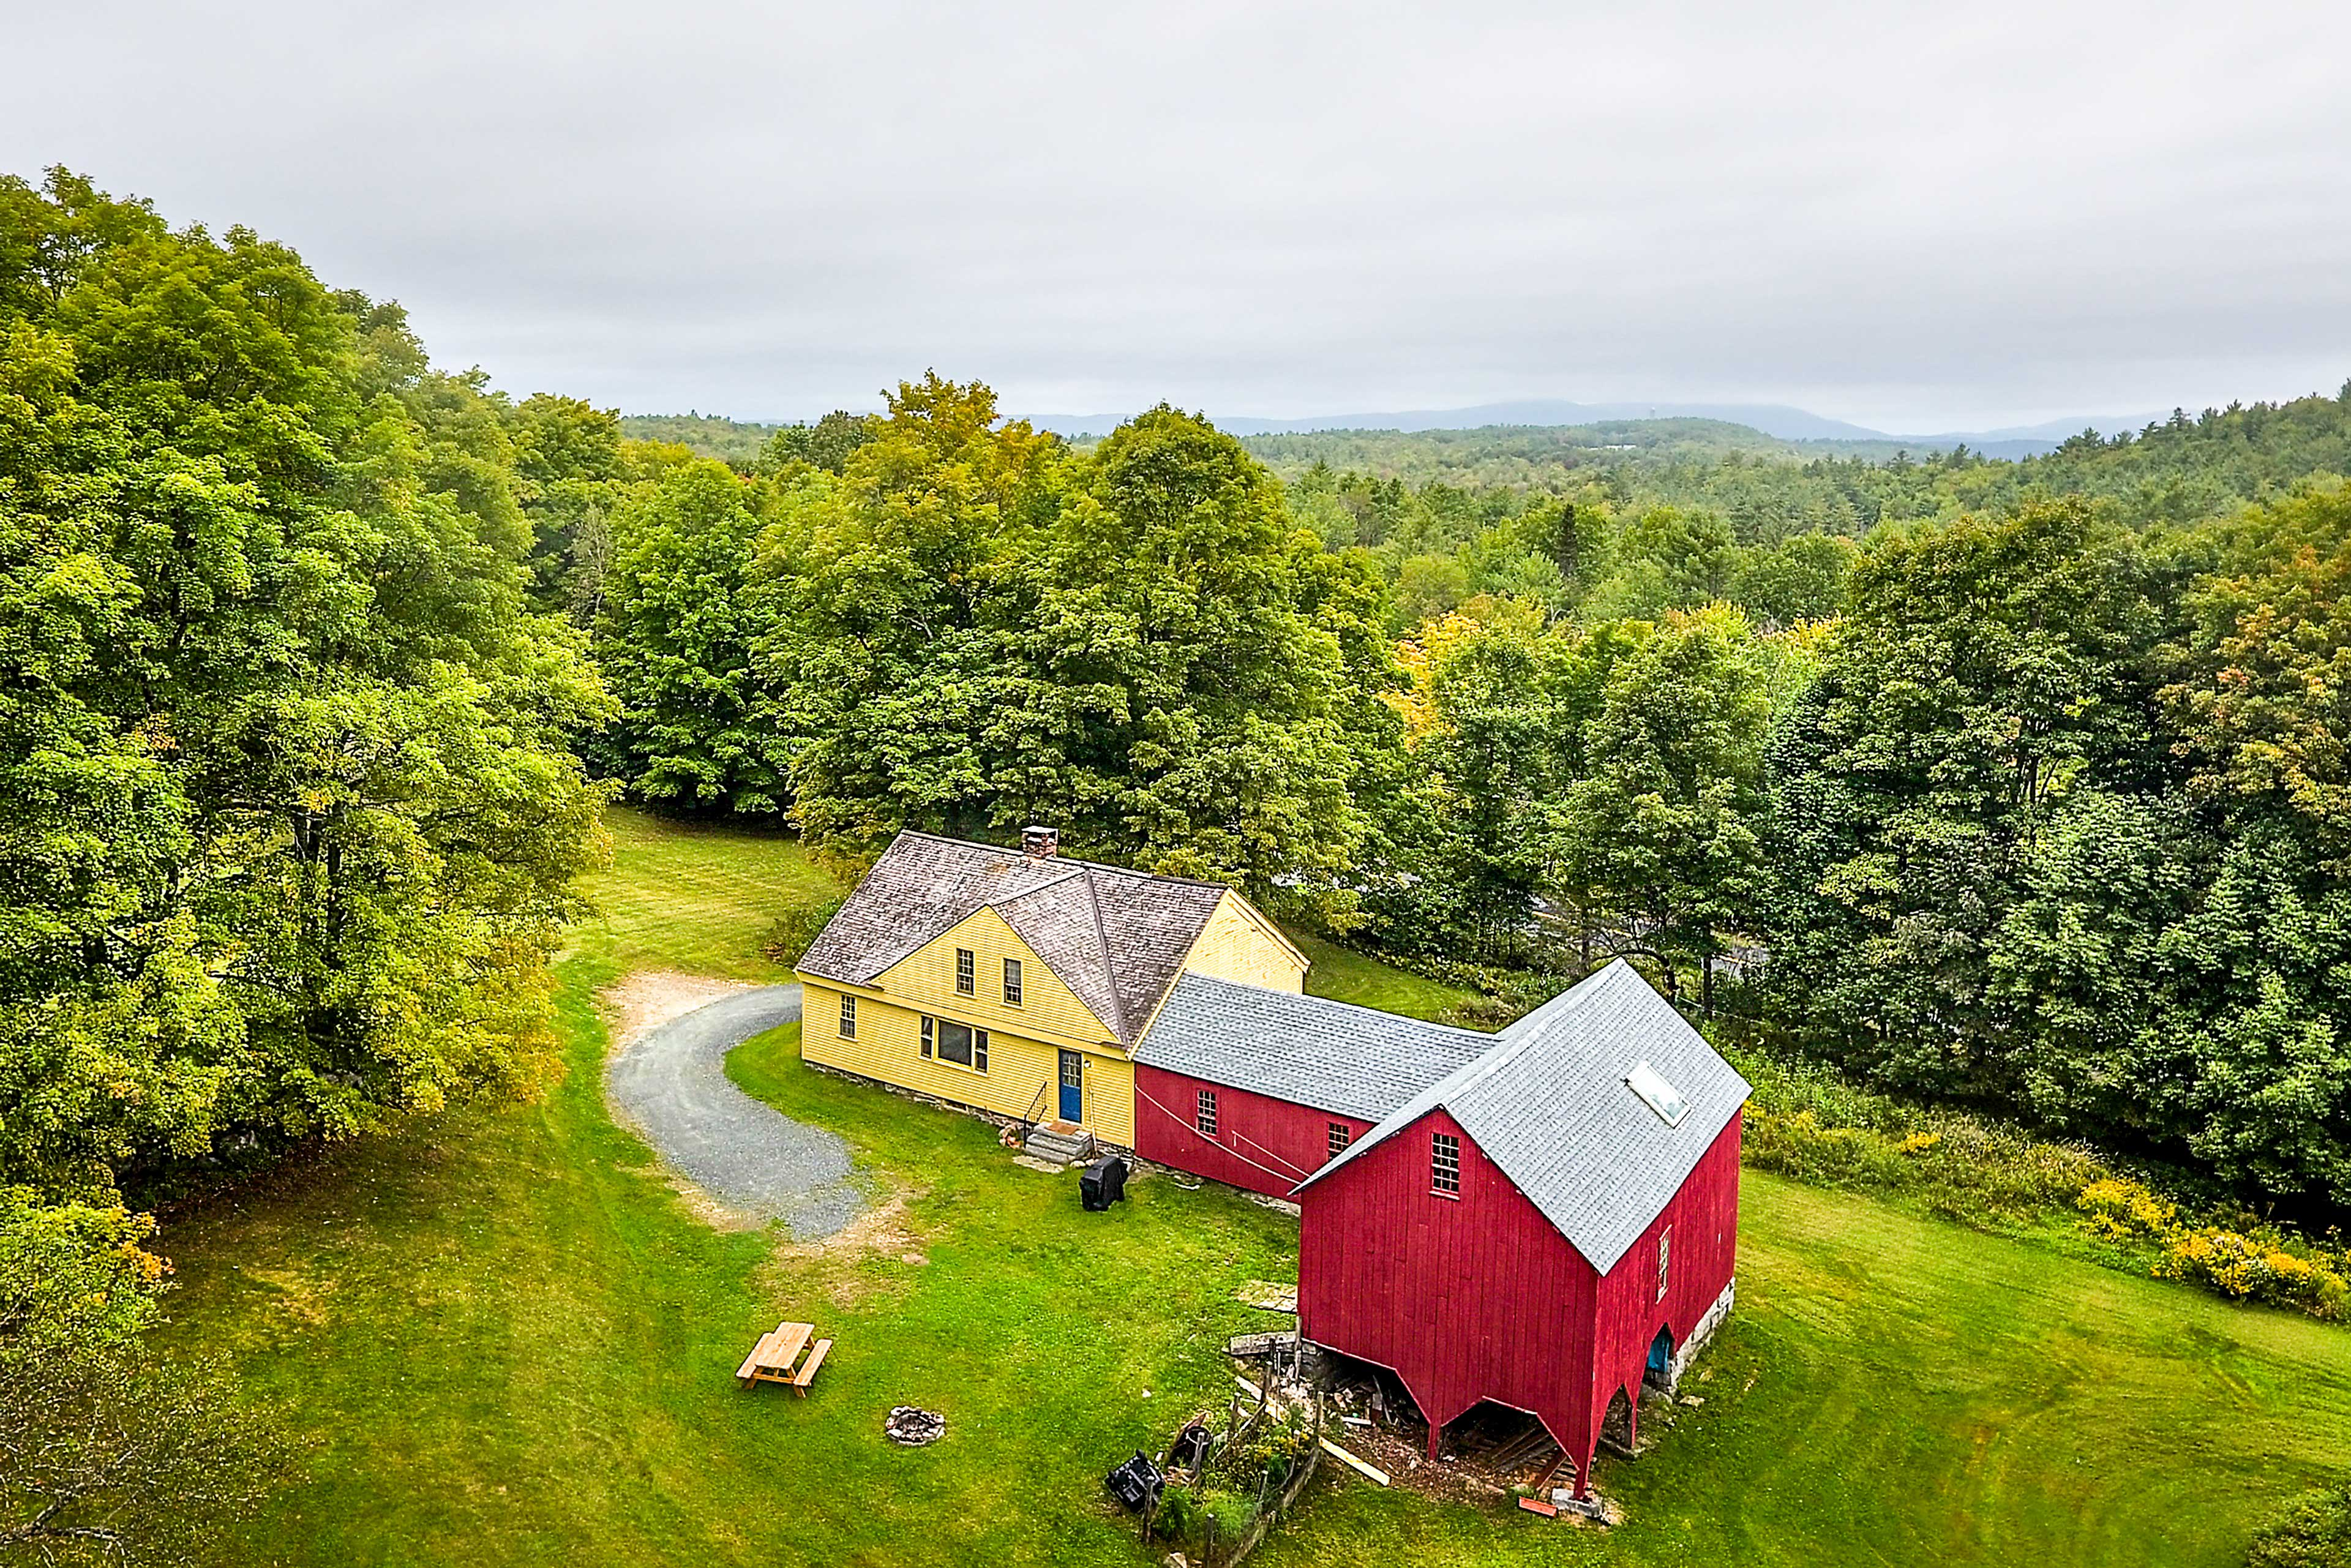 Bask in the beauty of nature at this charming farmhouse in Enfield!